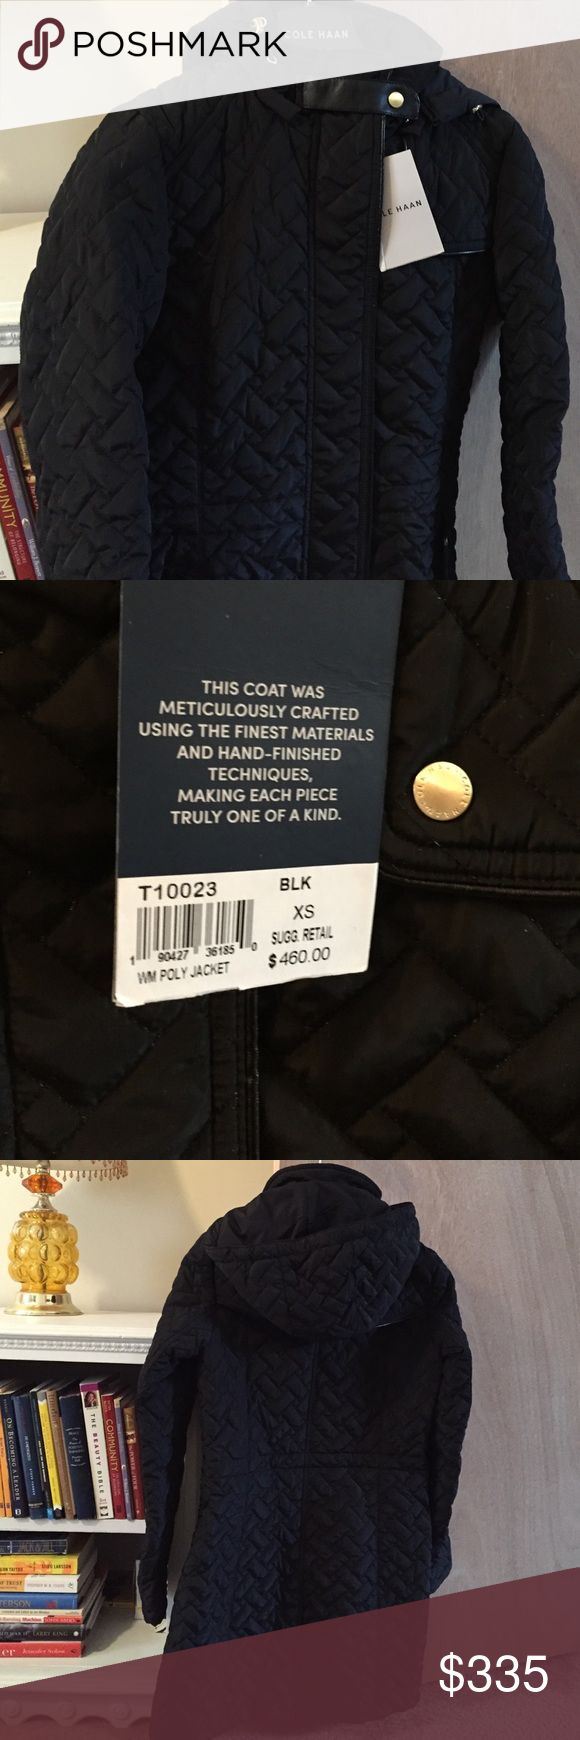 Cole Haan ladies winter coat Black quilted pattern with gold hardware 3/4 length and size XS Cole Haan Jackets & Coats